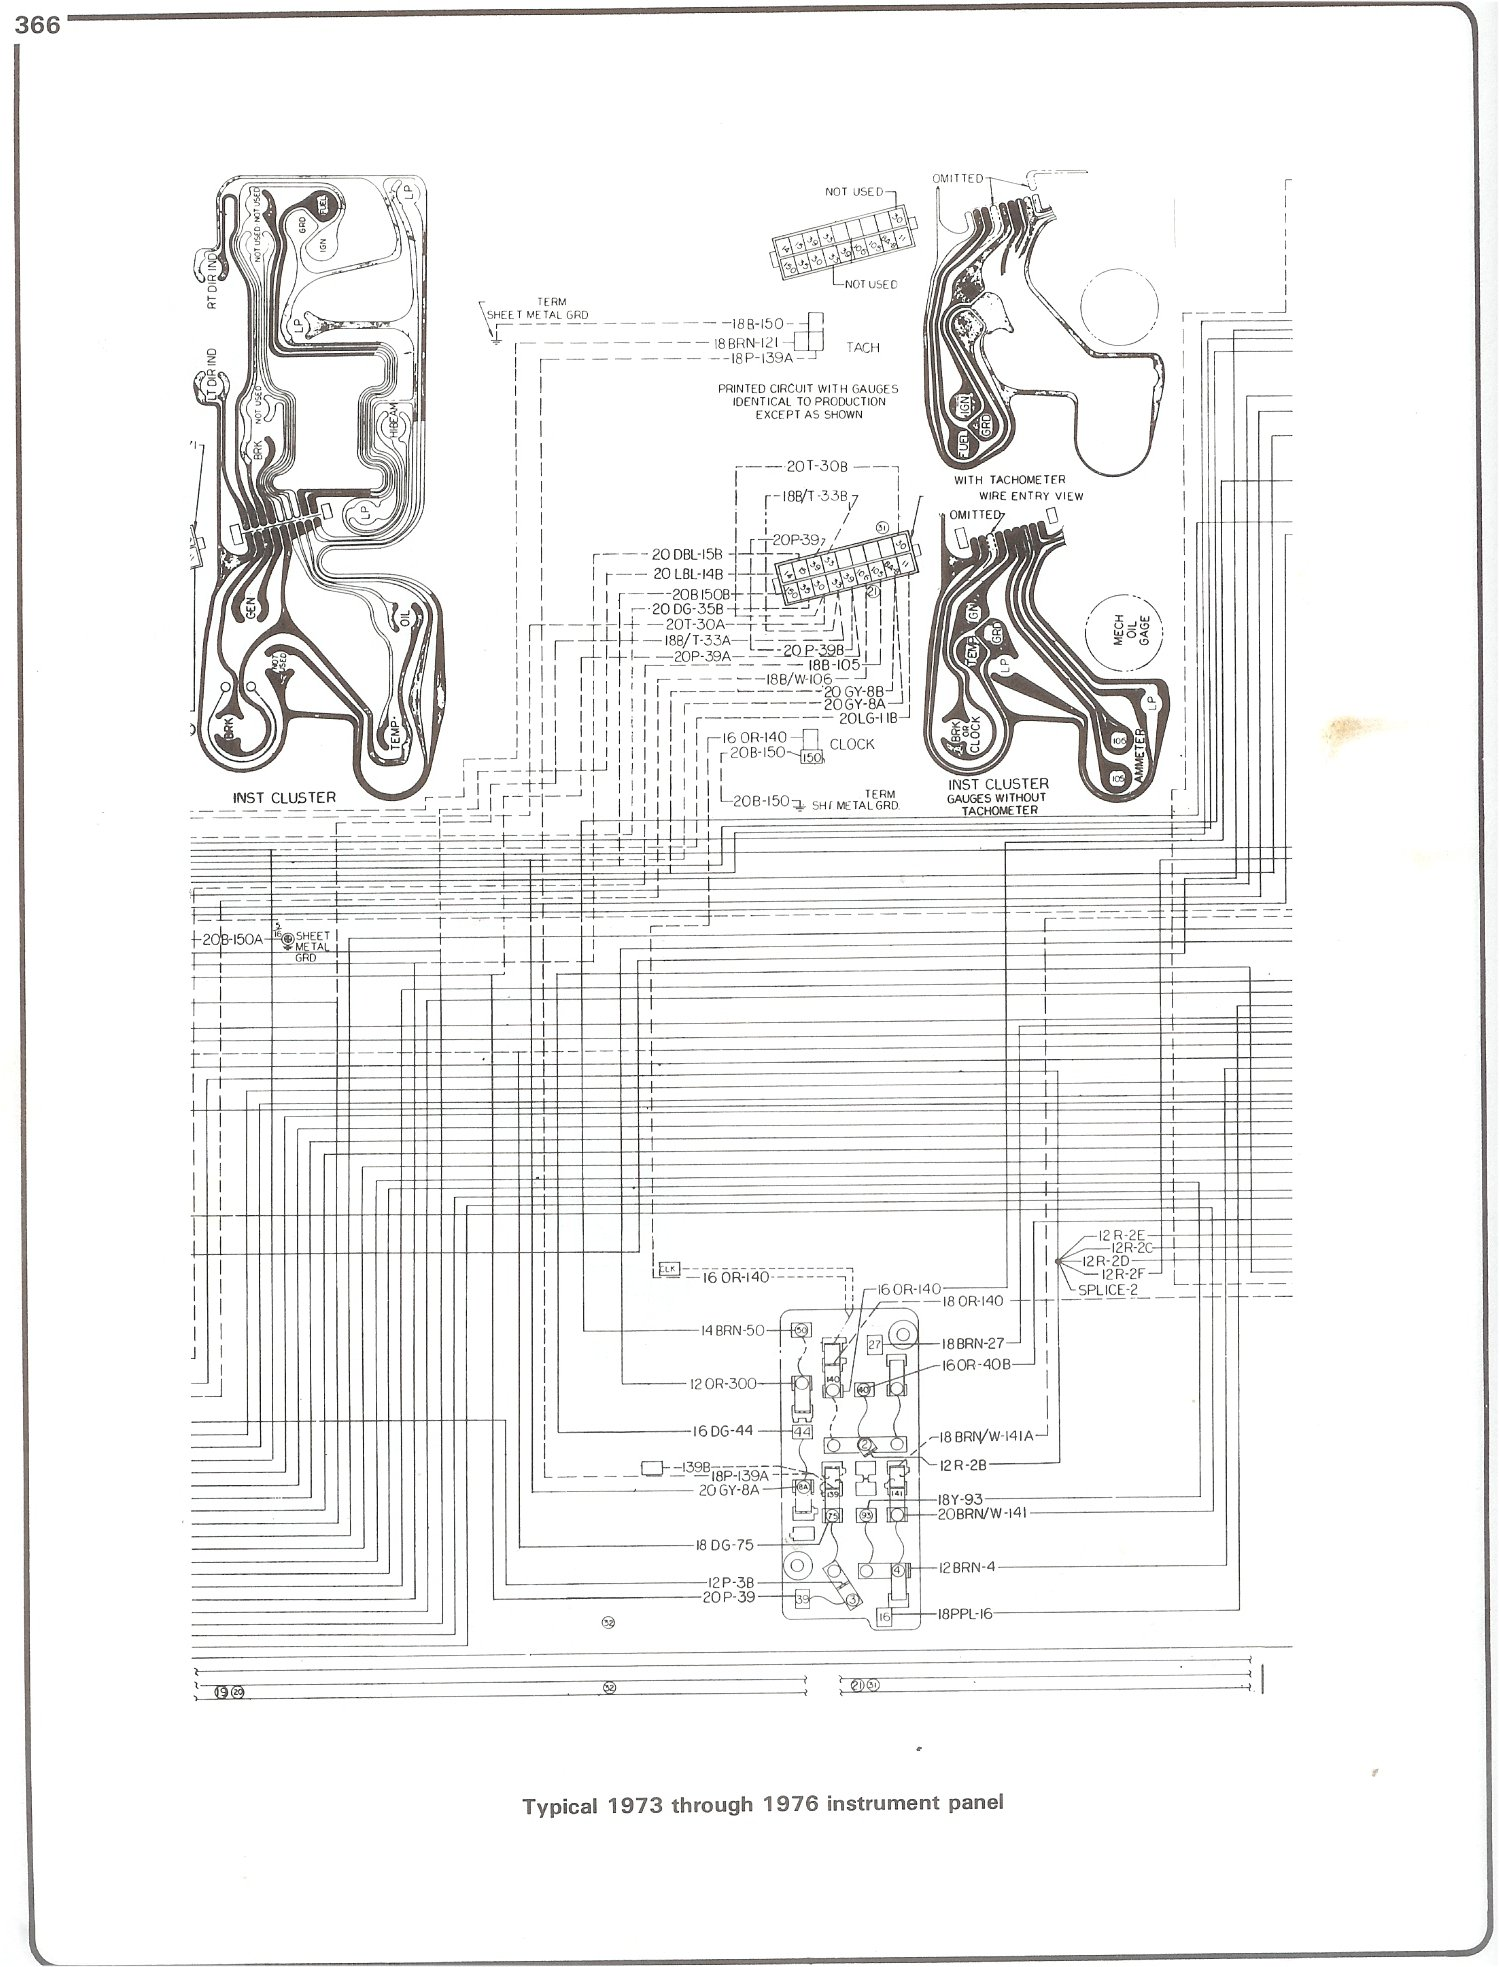 83856 85 chevy c10 wiring diagram digital resources 1990 ford pickup wiring diagram 85 chevy pickup wiring diagram #11